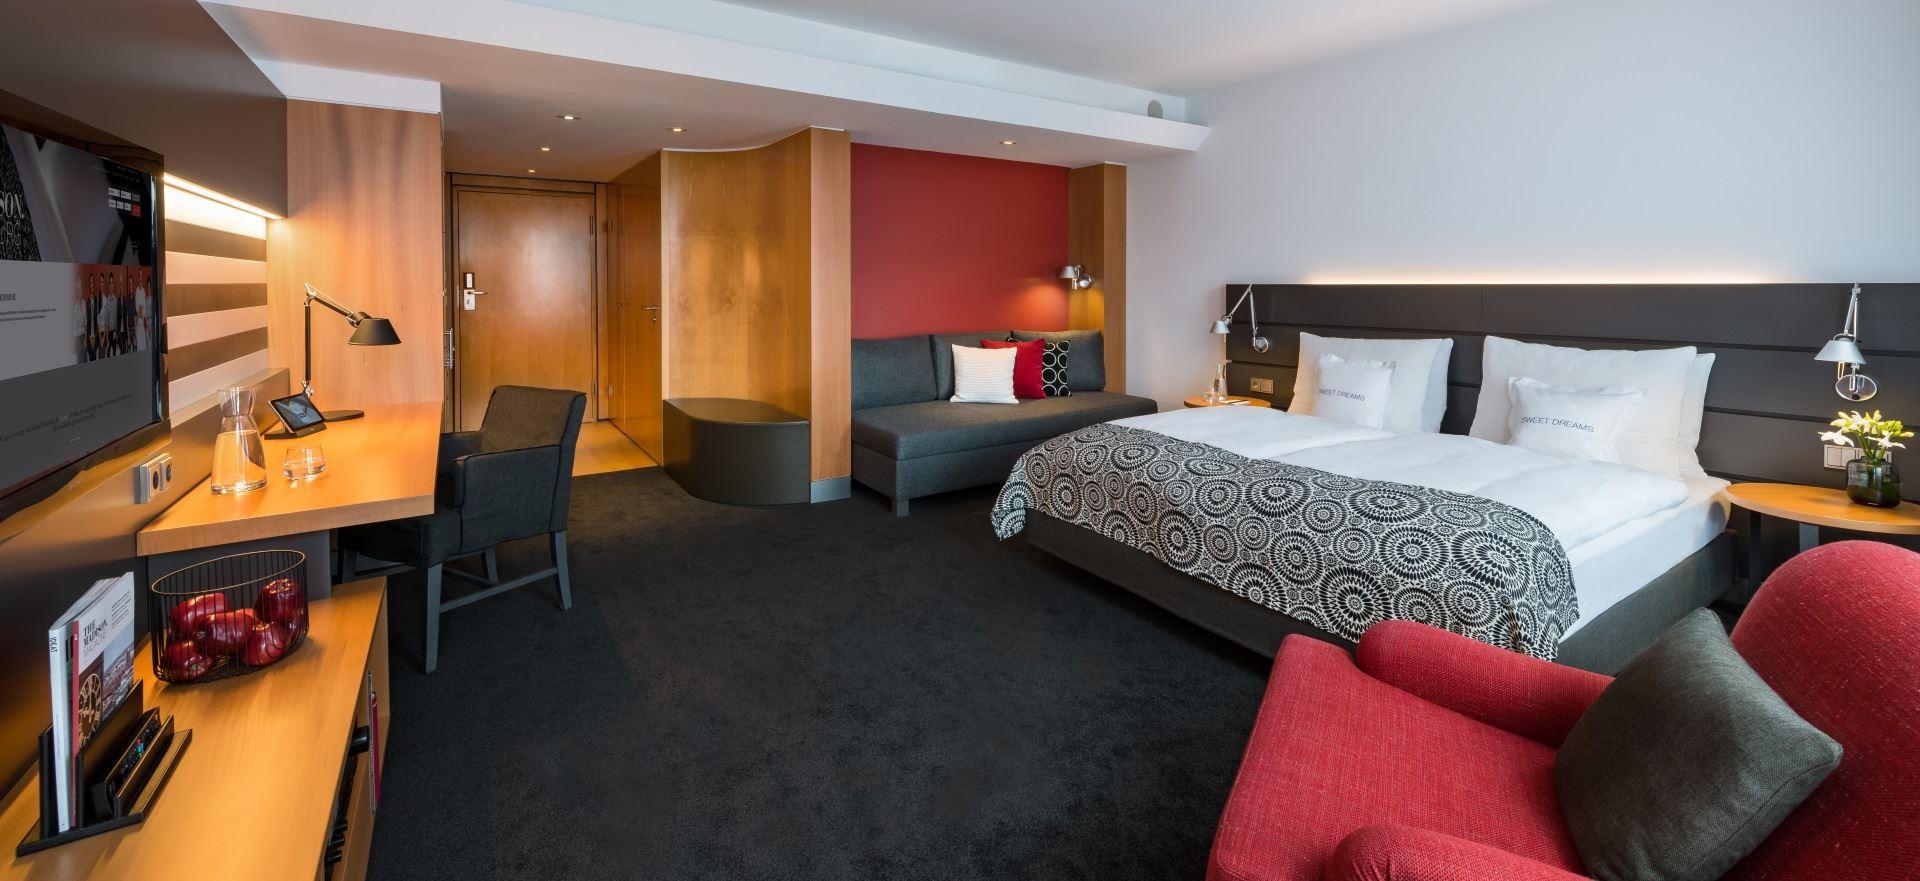 business-studio-zimmer-im-madison-hotel-hamburg